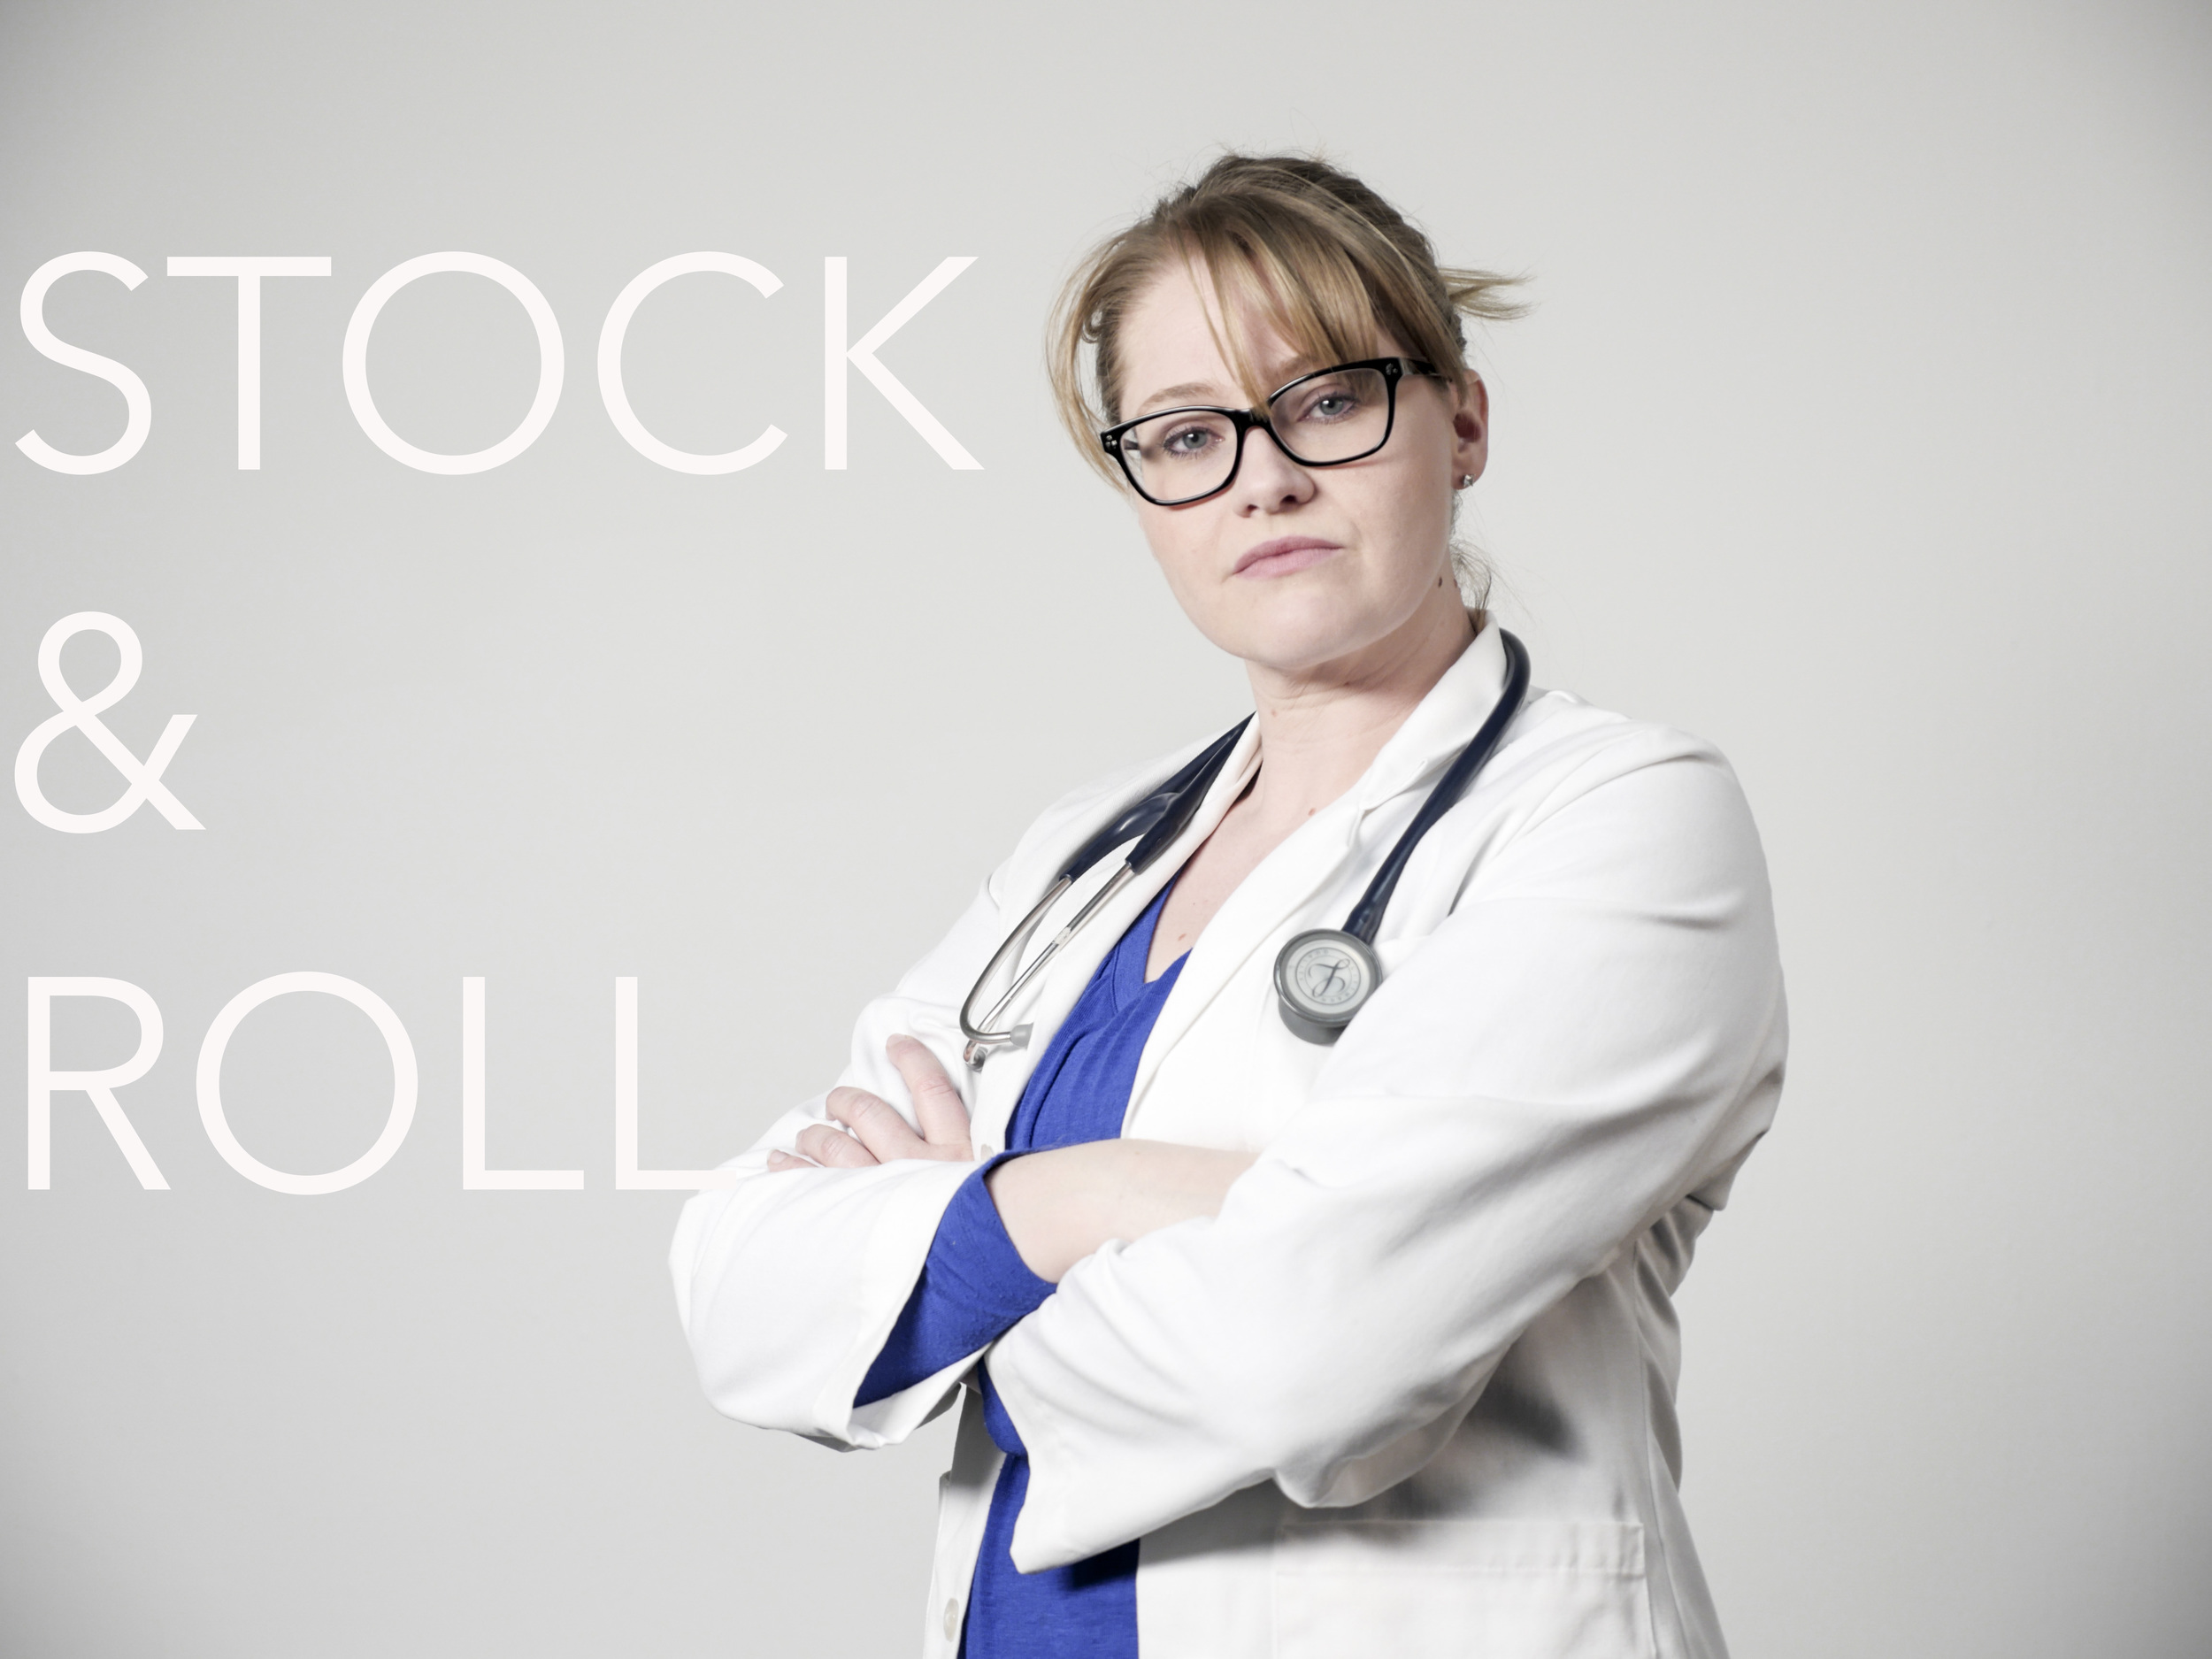 STOCK & ROLL : Transcripts from stock photography shoots.